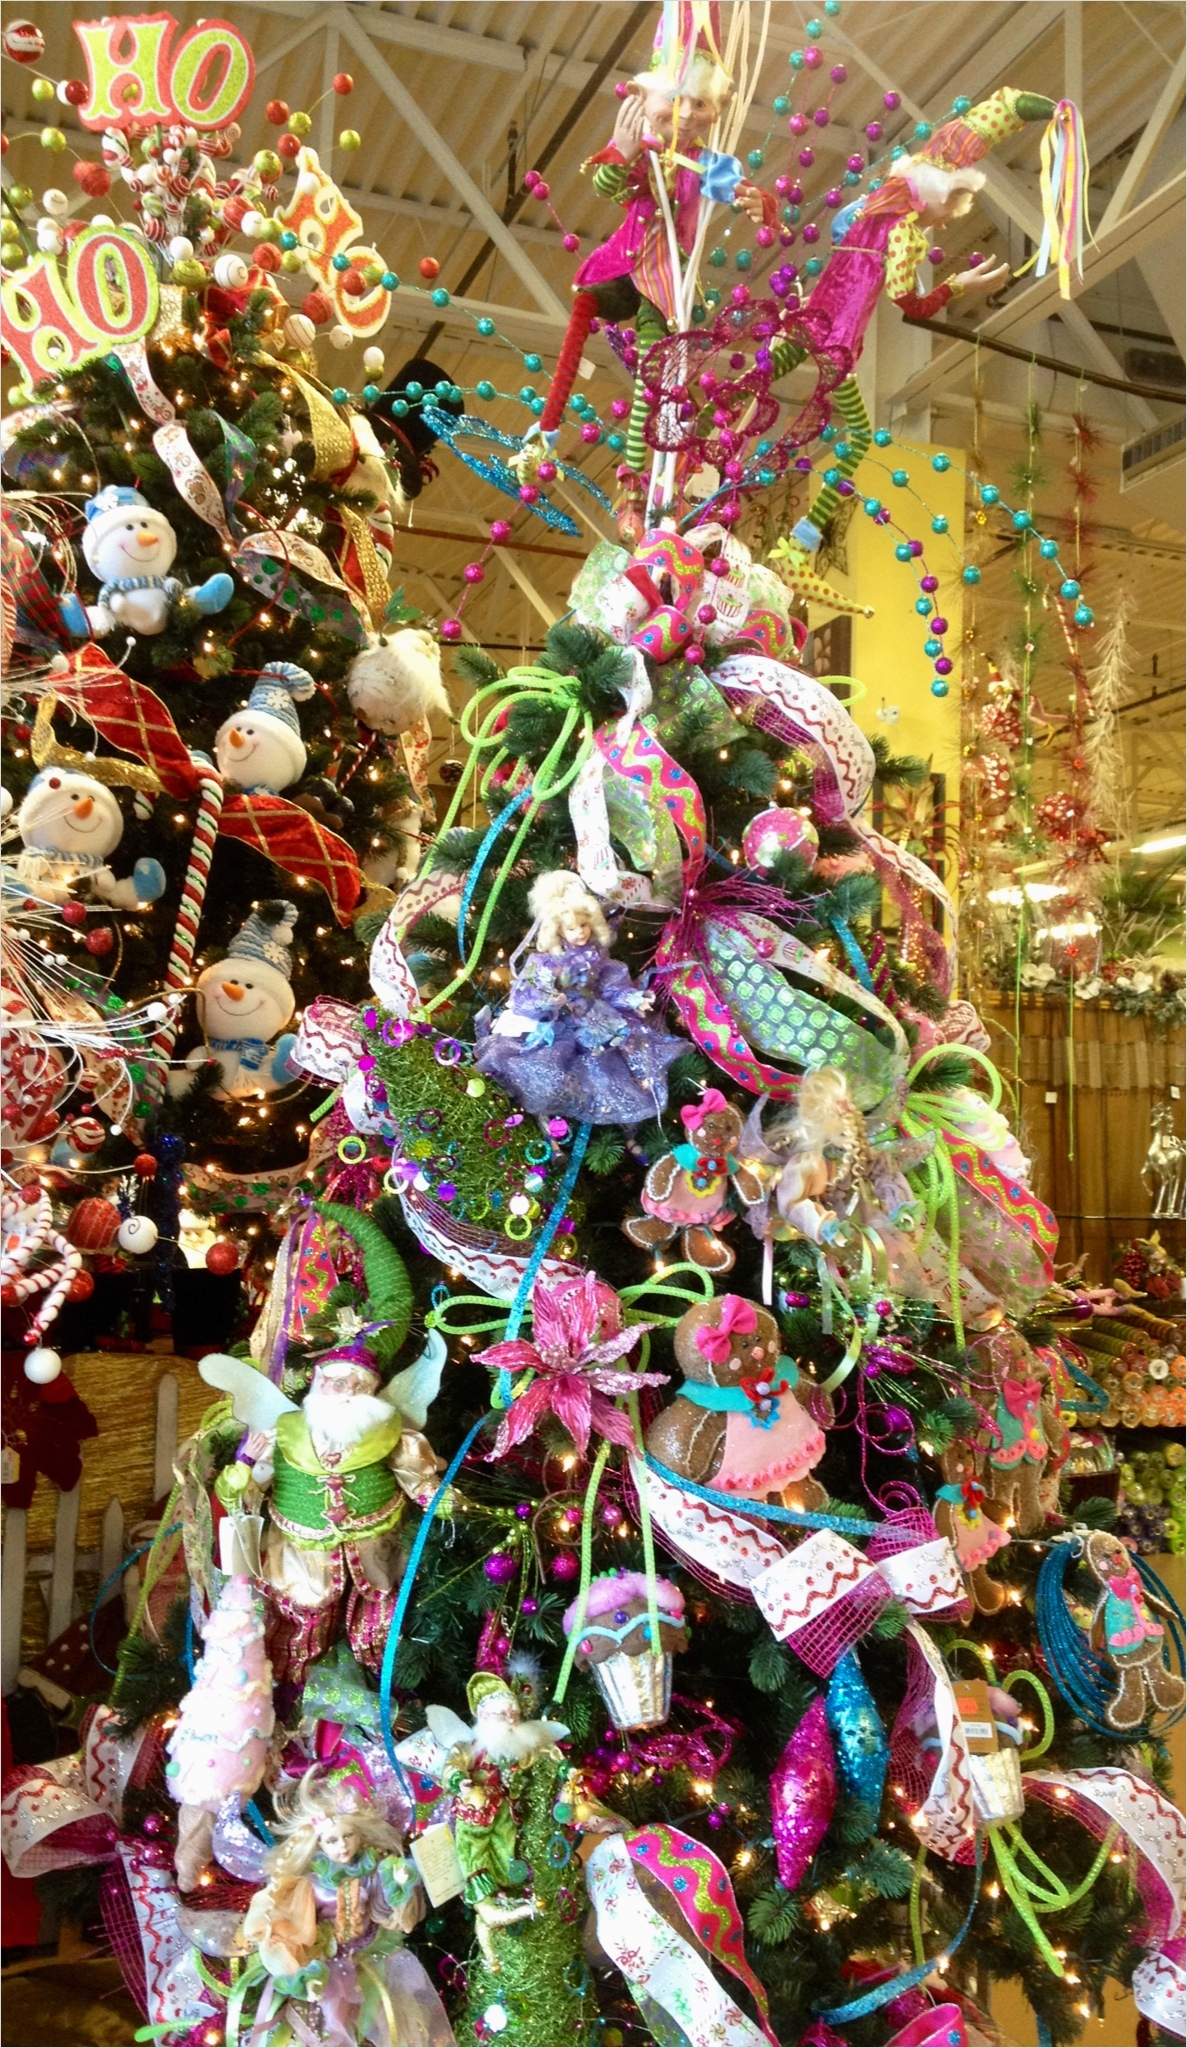 41 Awesome Whimsical Christmas Tree Decorating Ideas 31 42 Stunning Whimsical Christmas Decorations Ideas Decoration Love 7